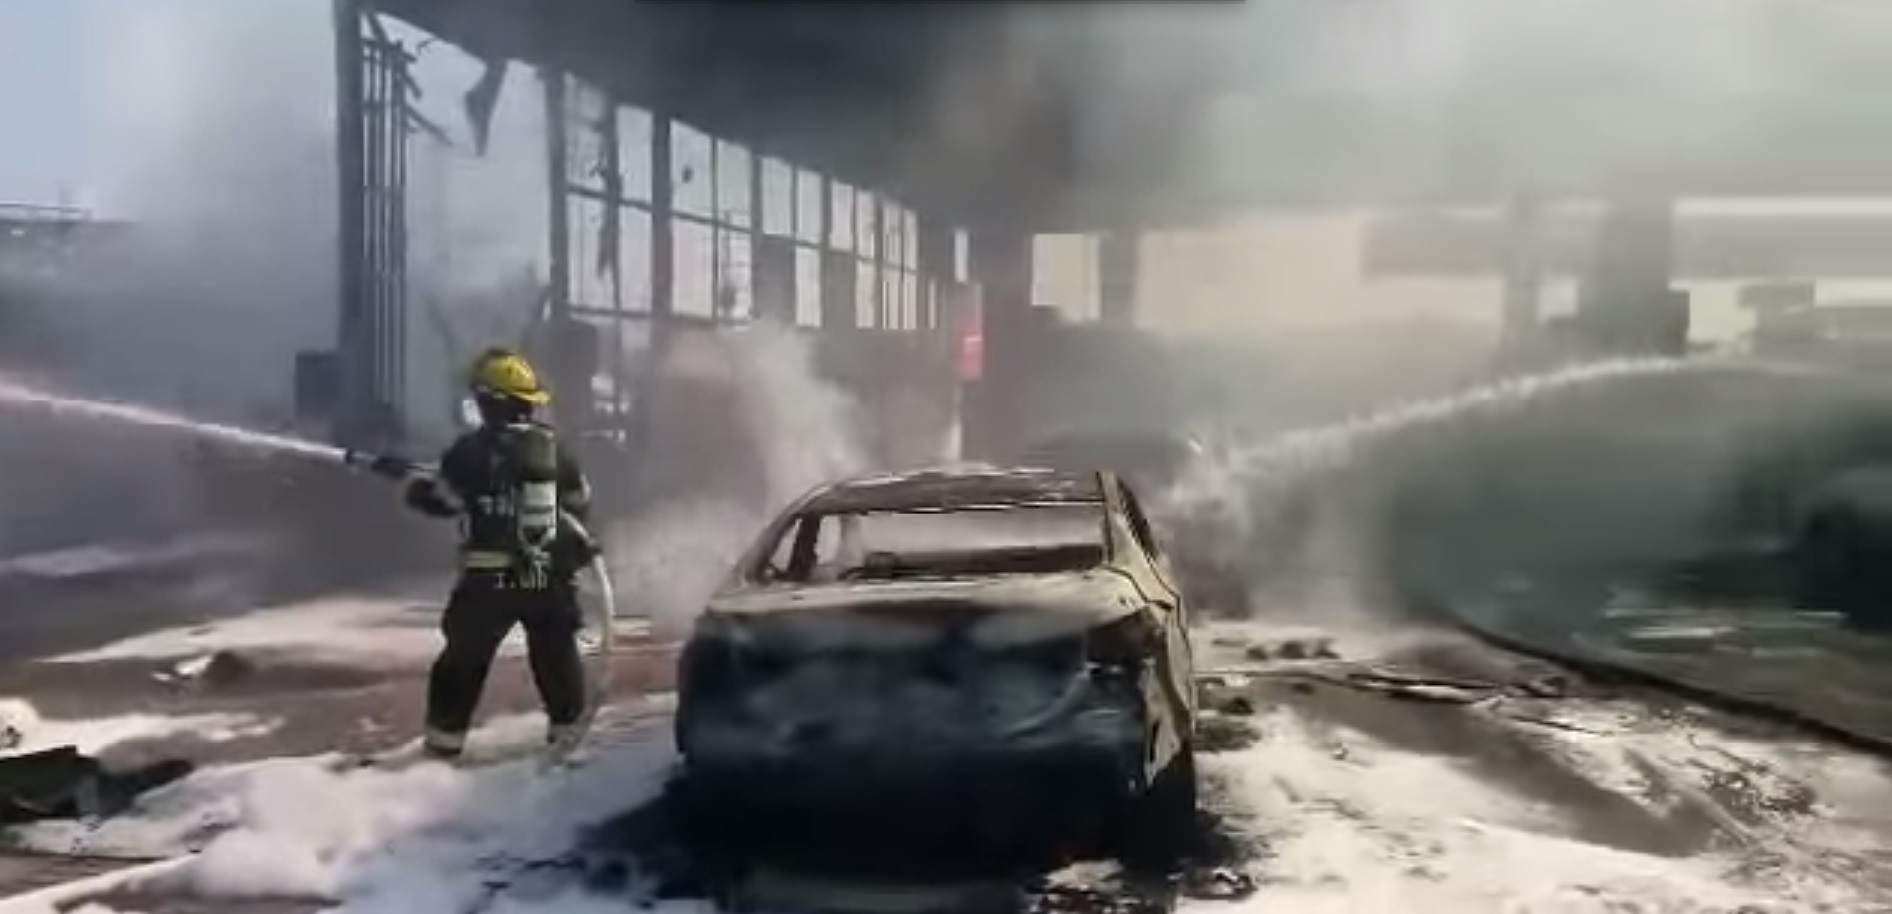 Rocket hits gas station-0 casualties